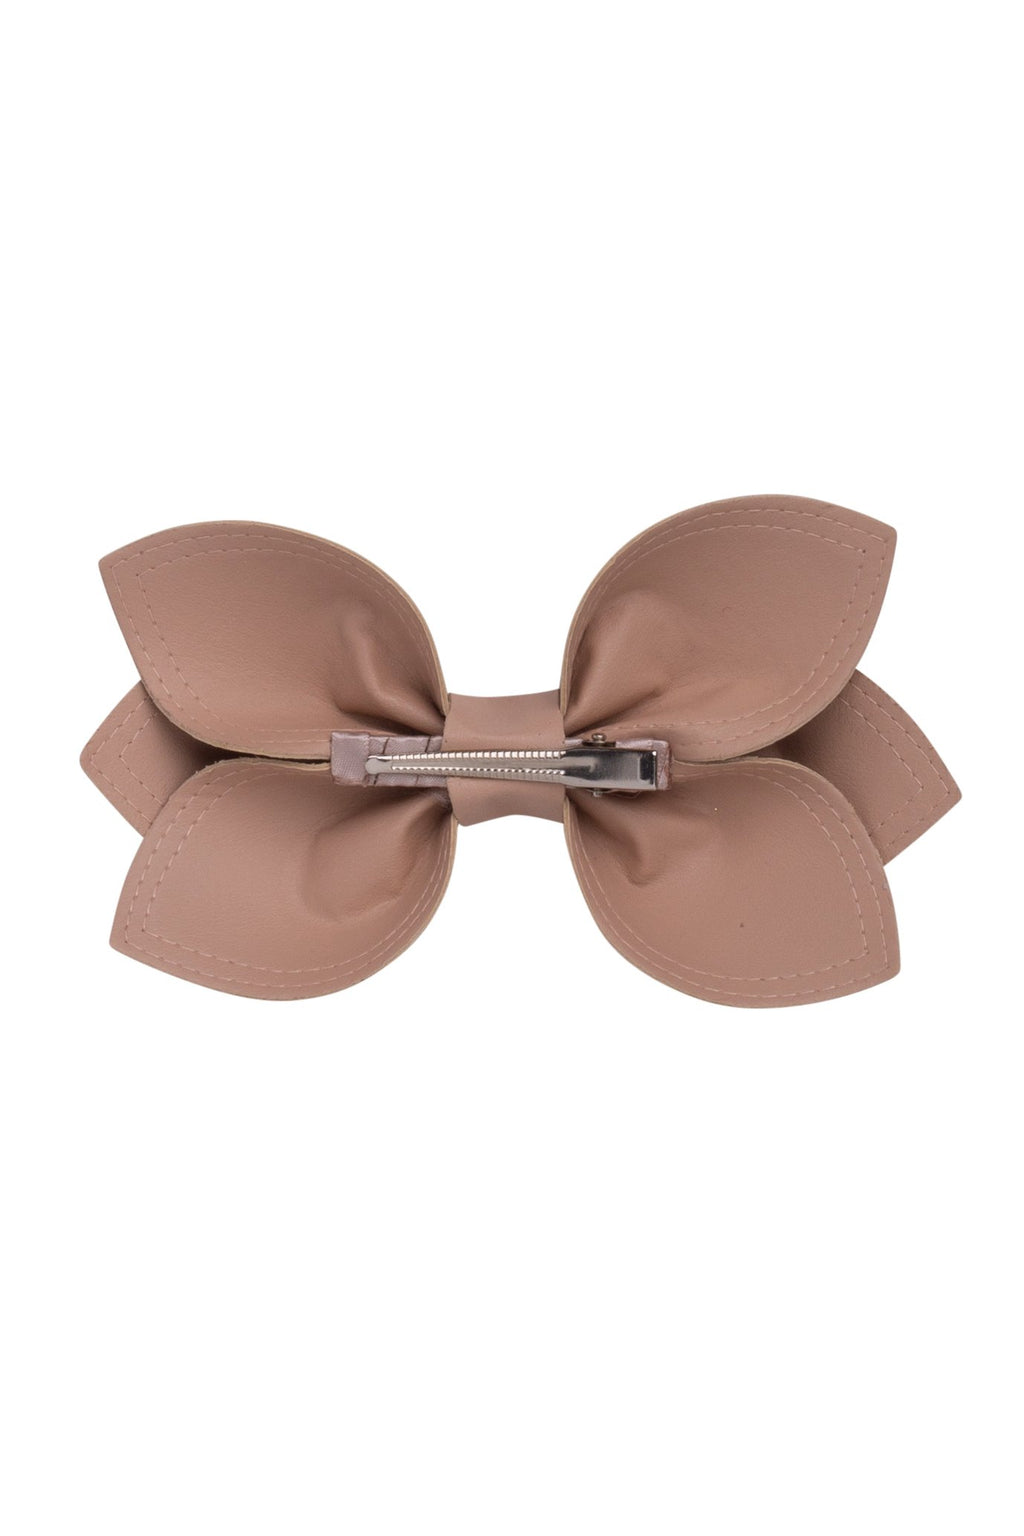 Growing Orchid Clip/Bowtie - Taupe Leather